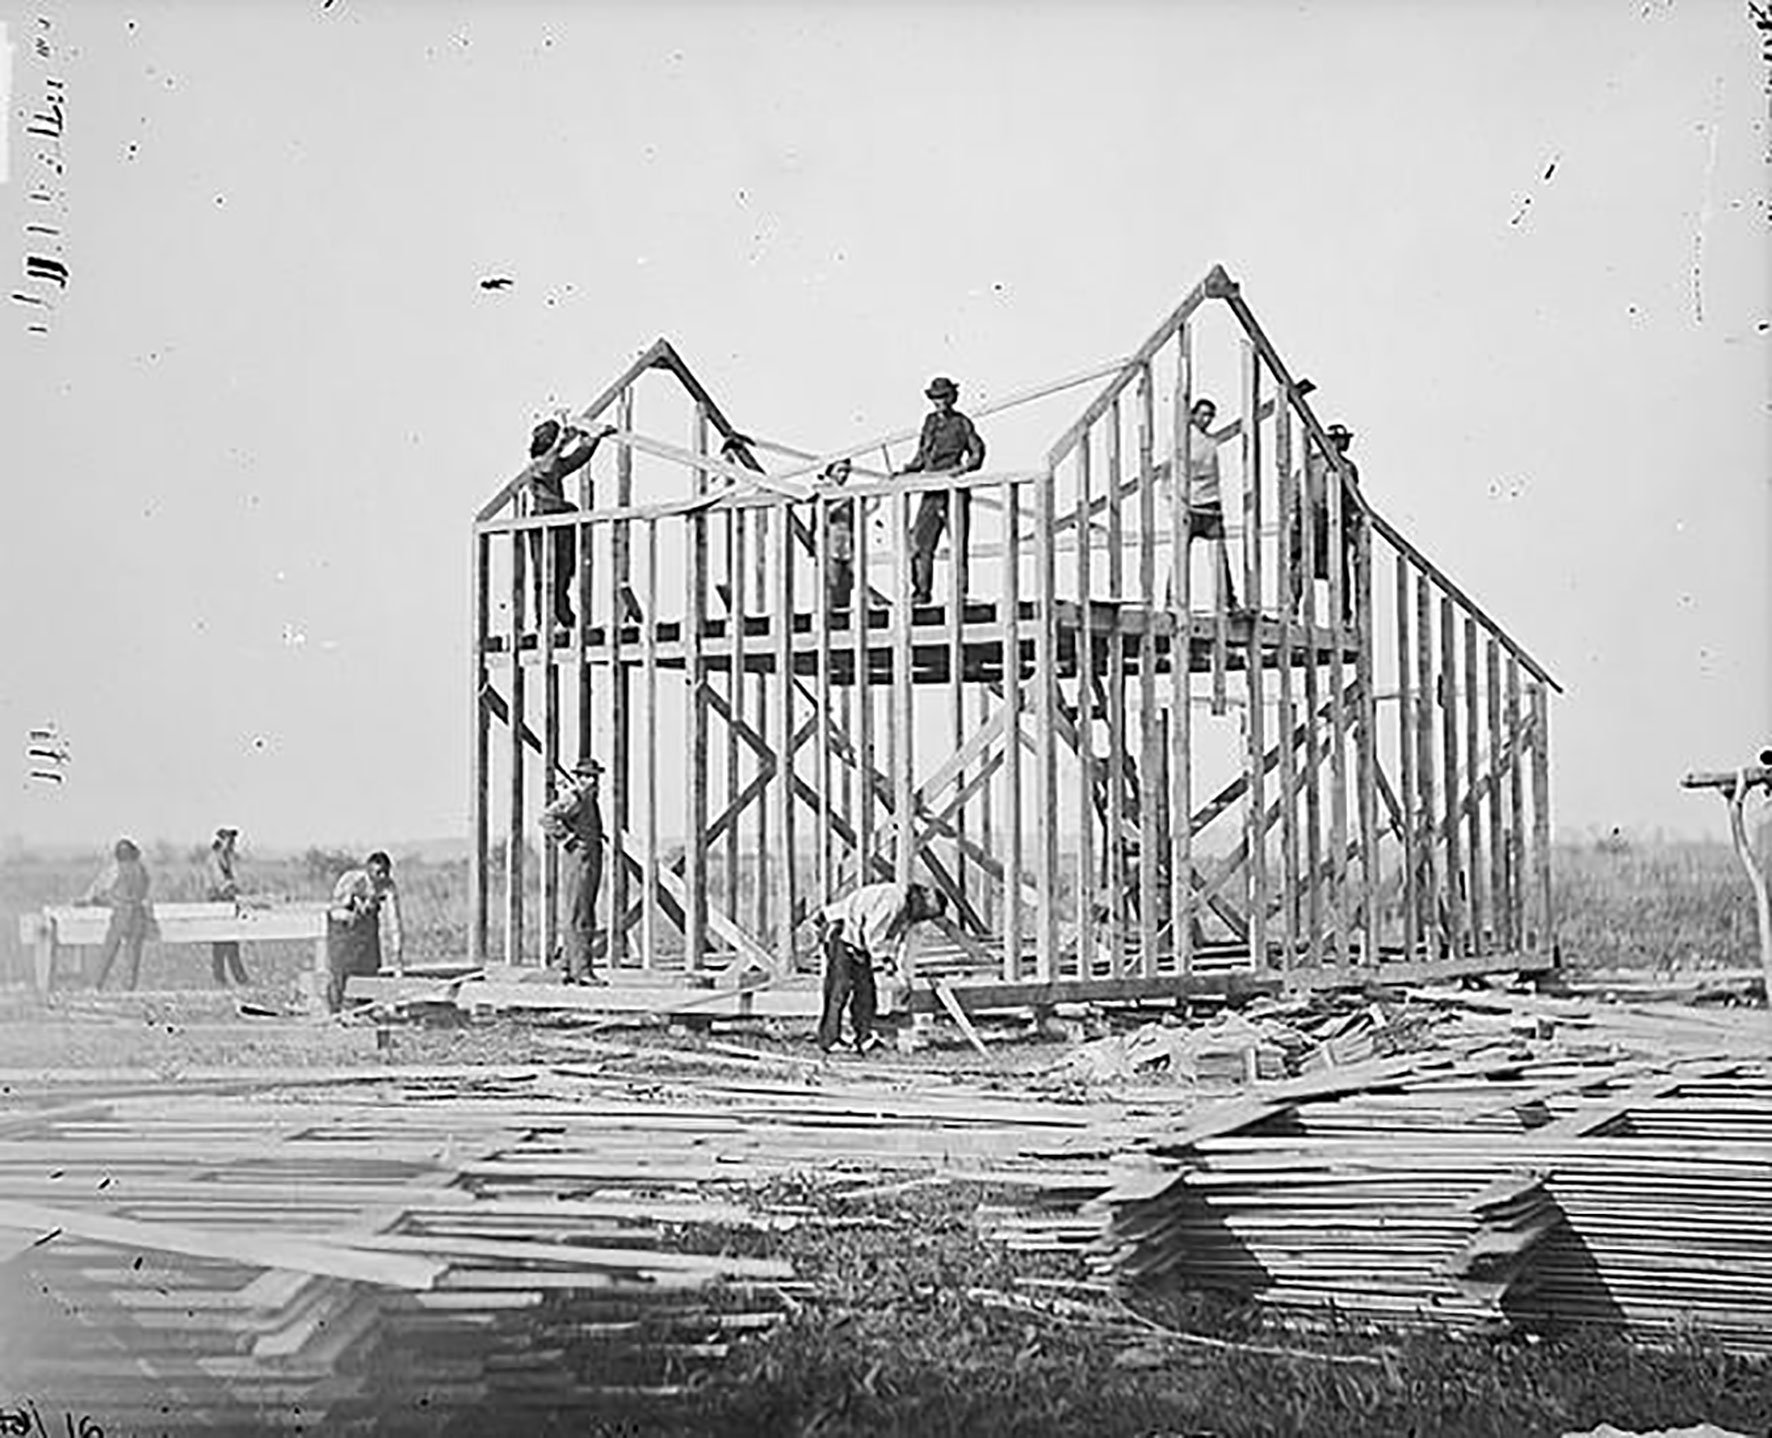 Omaha Reservation, Nebraska, 1877. Photo by William H. Jackson. Courtesy of the Pavilion of the United States at the 17th International Architecture Exhibition – La Biennale di Venezia